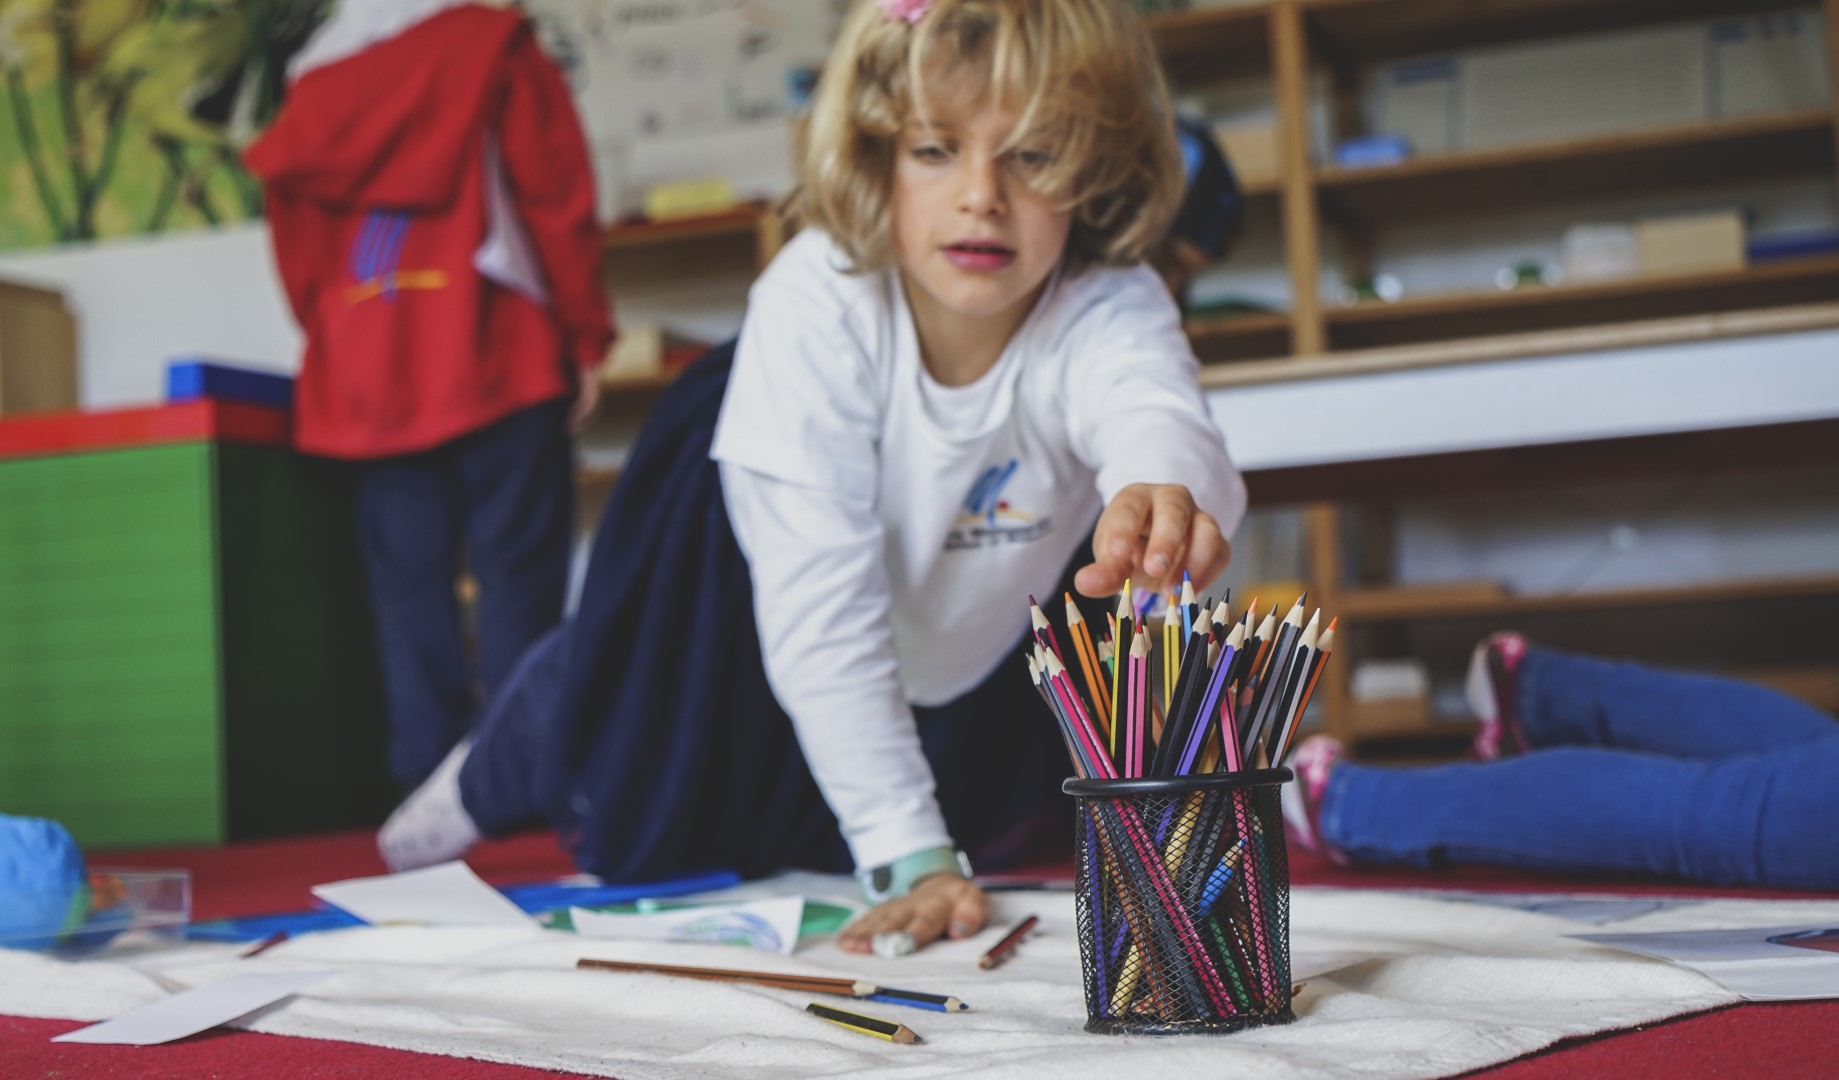 A girl in the primary classroom working on the floor in front of shelves with learning material